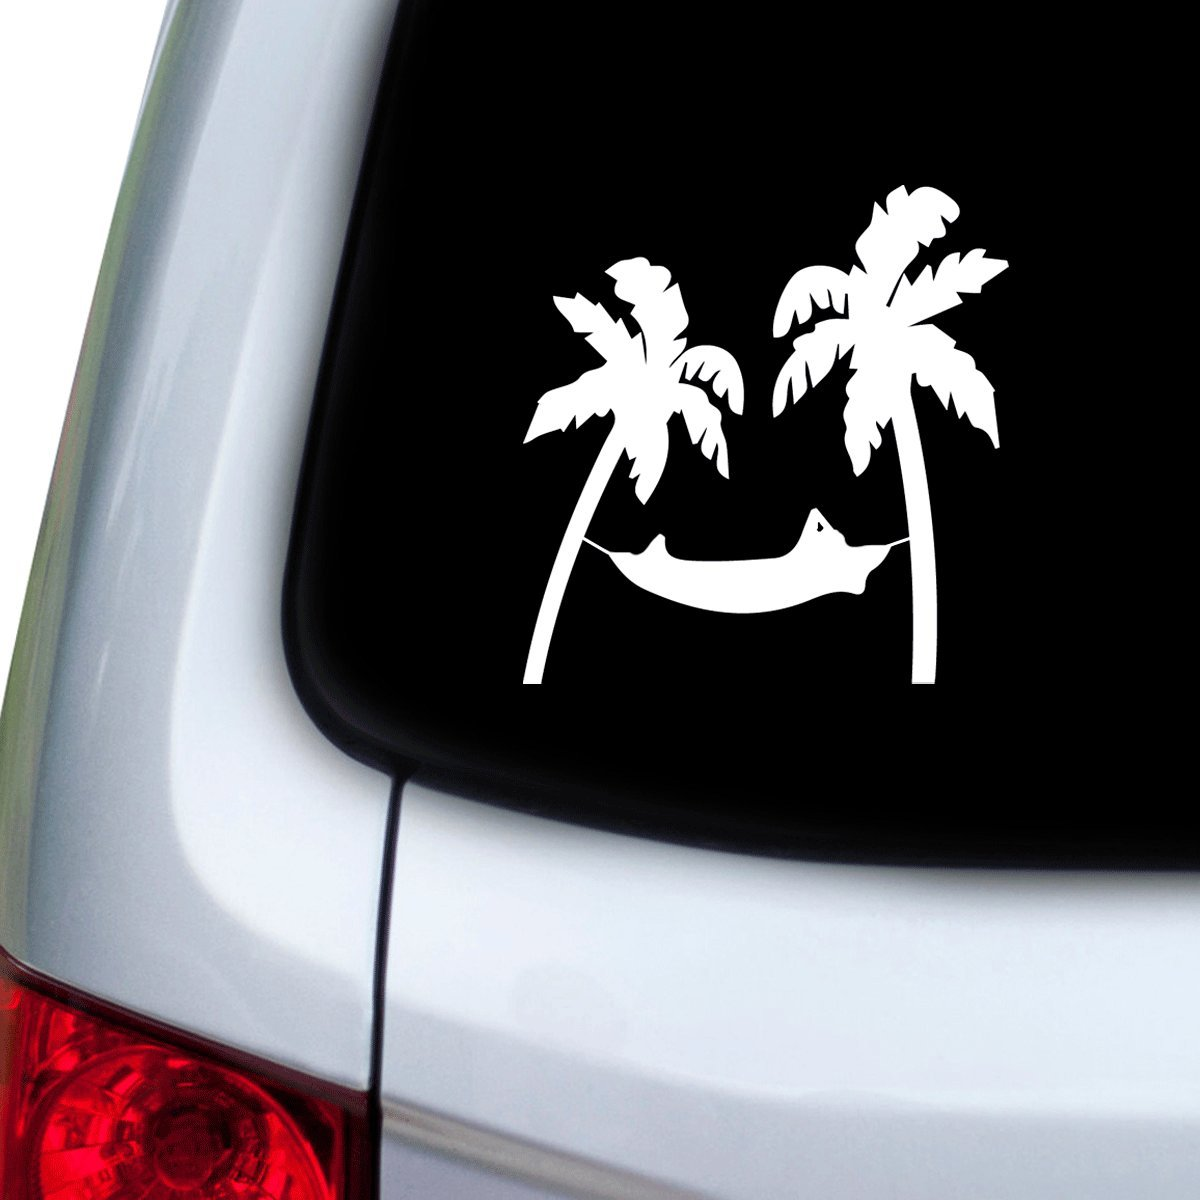 Doors White StickAny Car and Auto Decal Series Palm Hammock Sticker for Windows Hoods